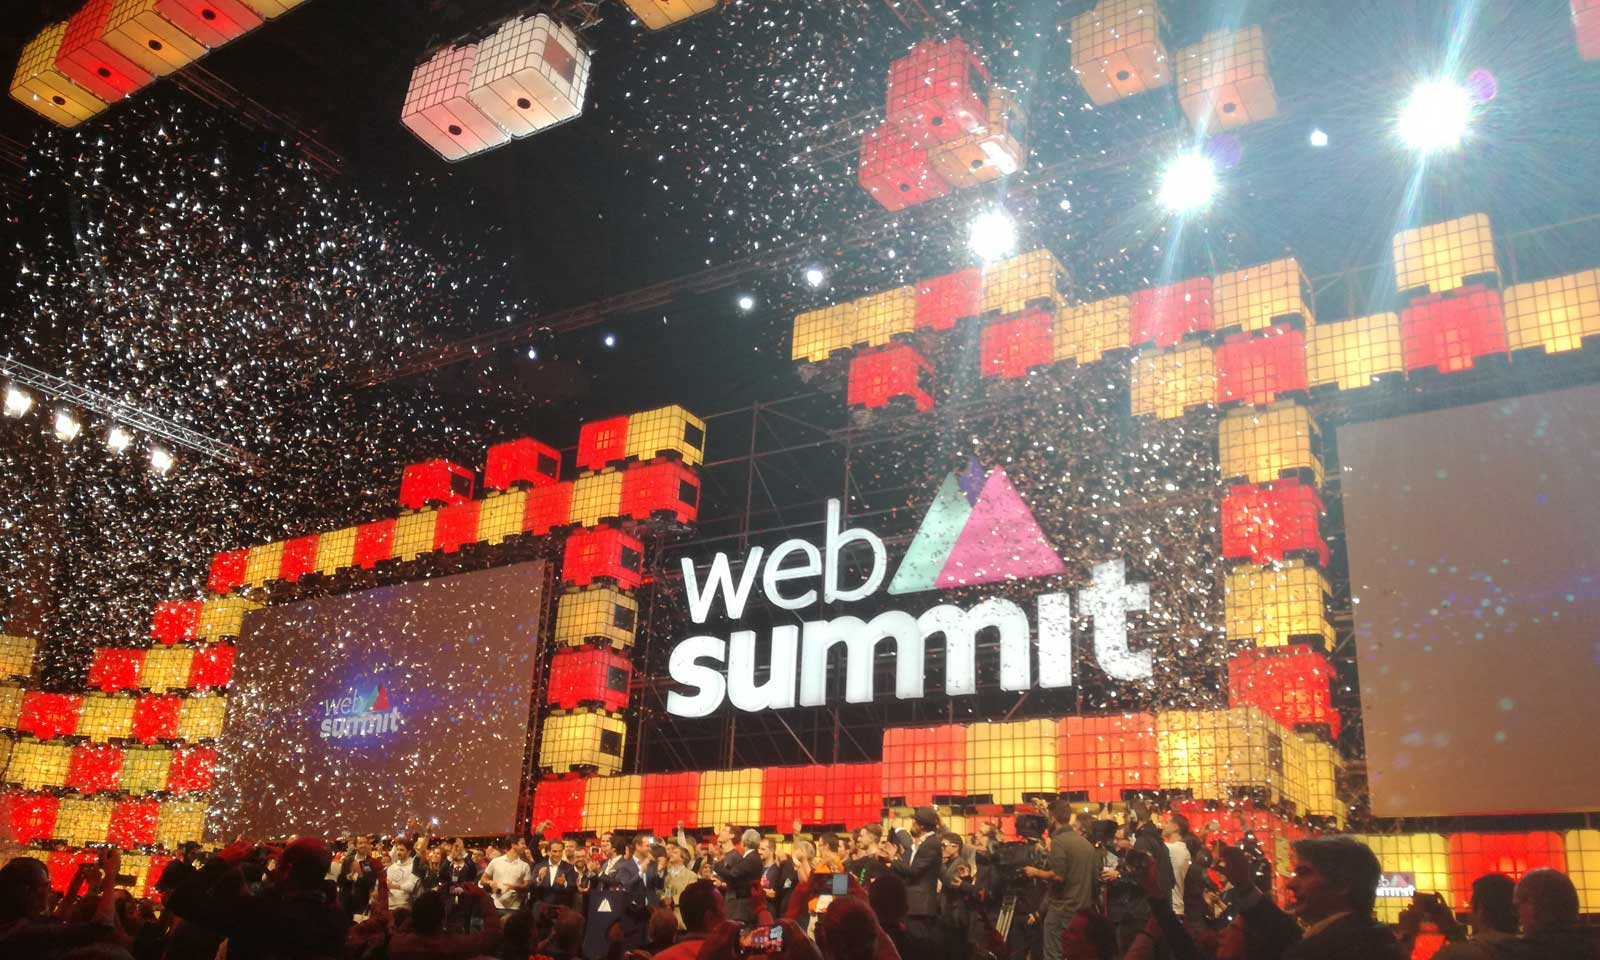 Web summit opening